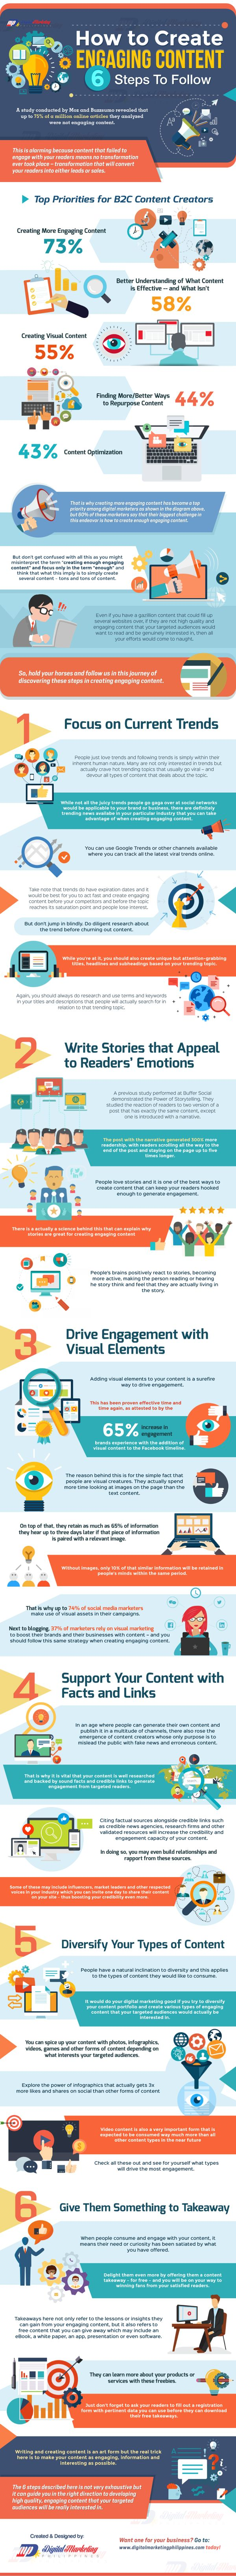 How to Create Engaging Content – 6 Steps to Follow 1